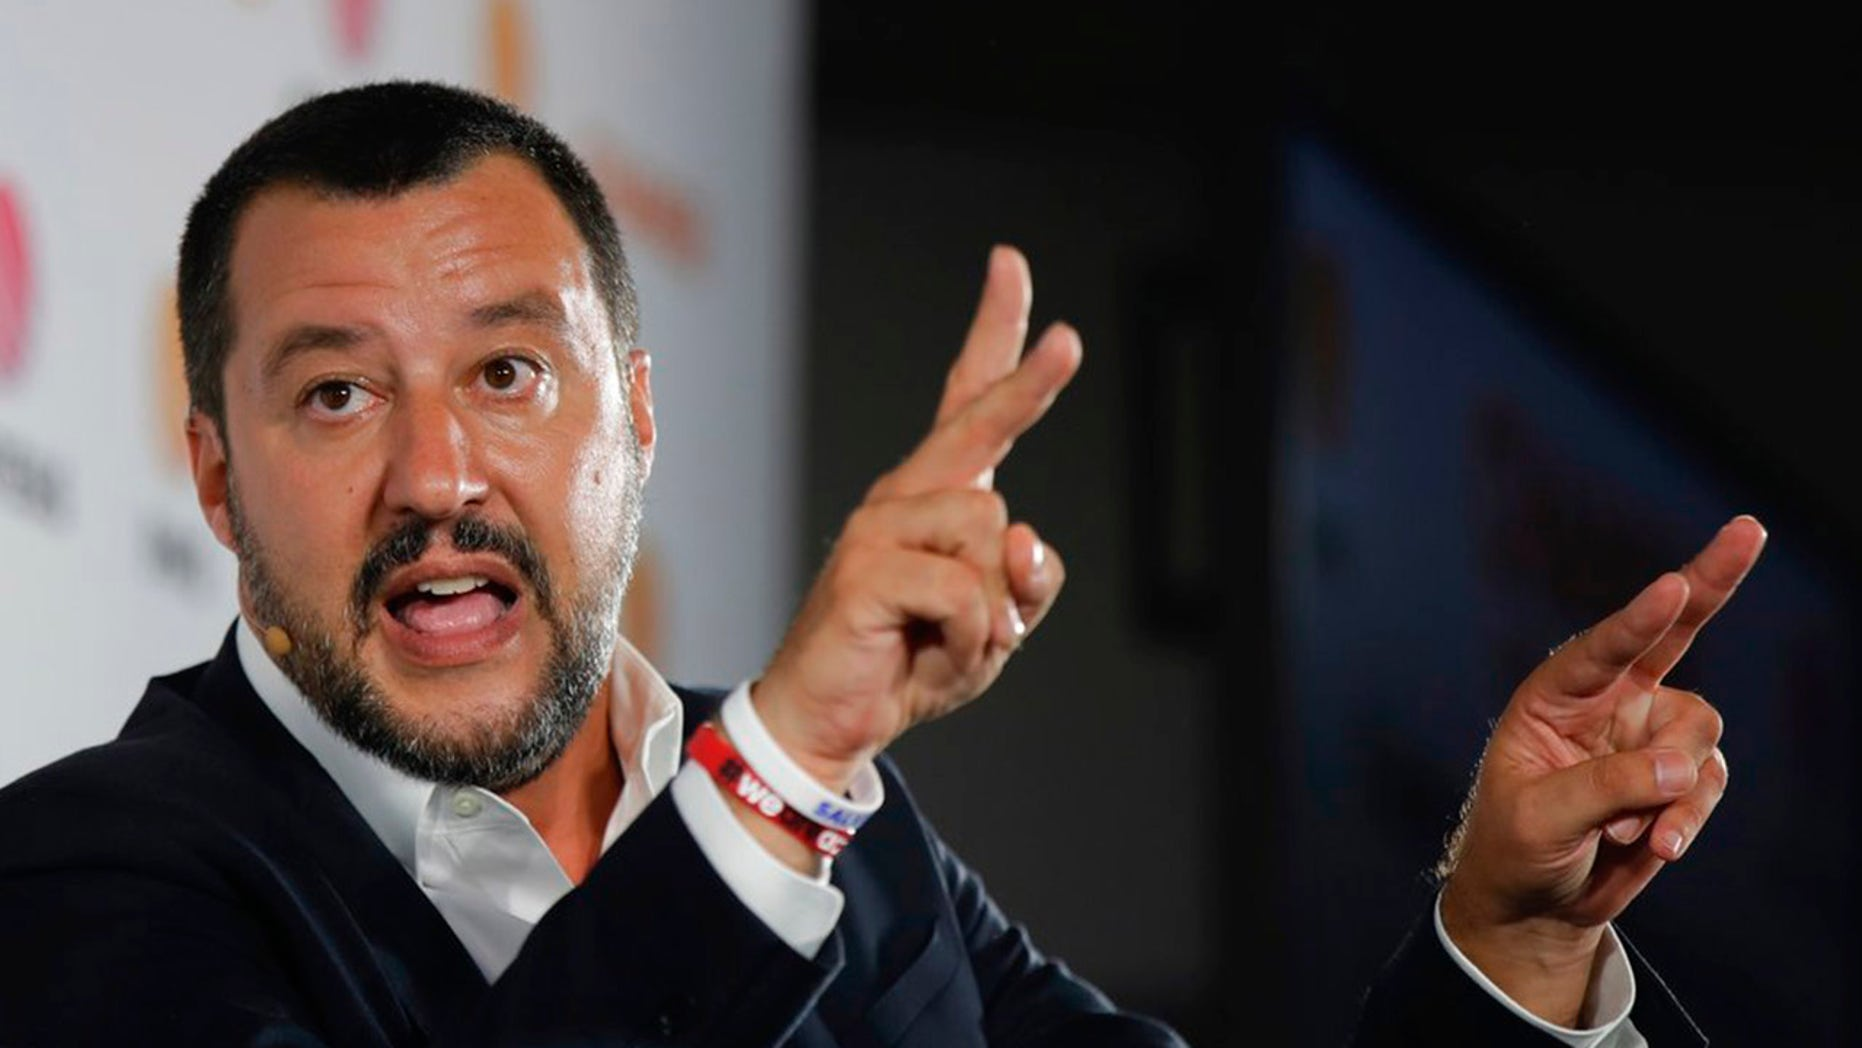 Italian Interior Minister Matteo Salvini has slammed UN criticism of its migration policies.